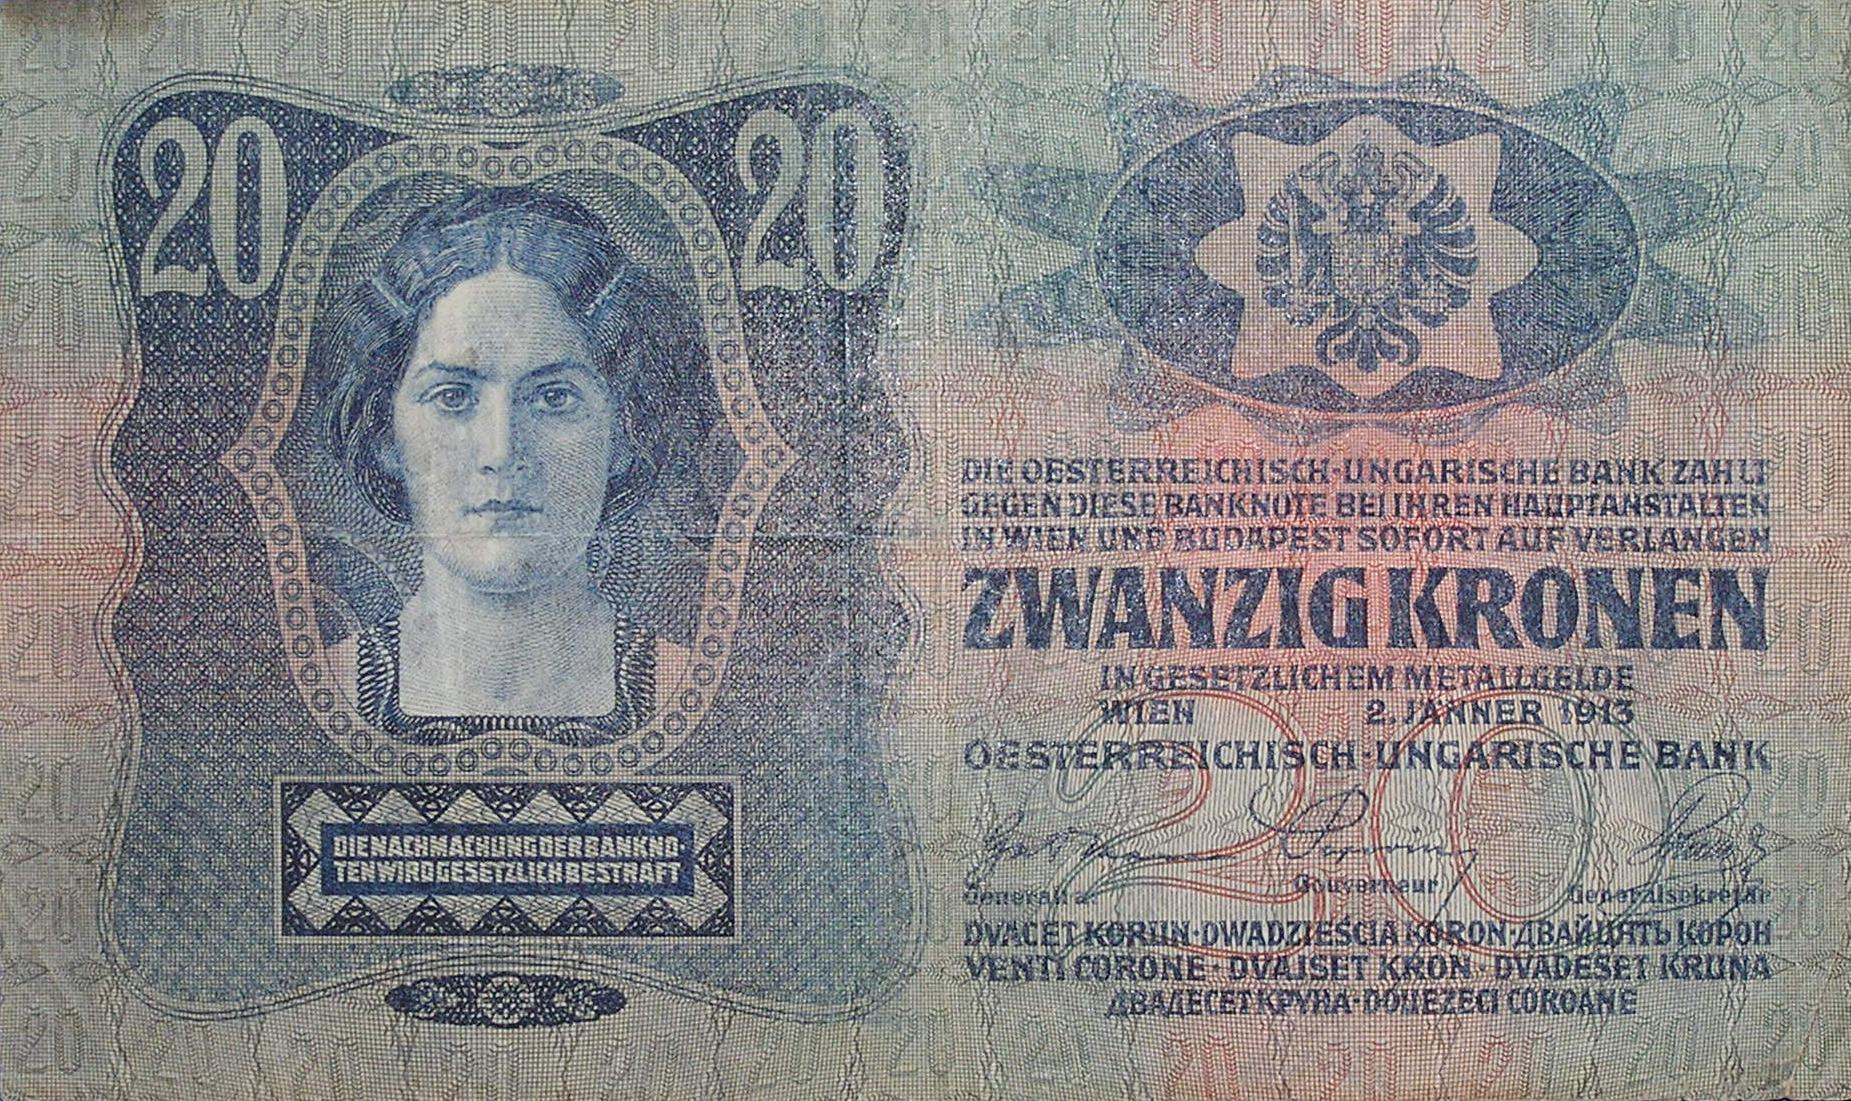 A 1913 20-crown banknote of the Dual Monarchy, using all official and recognized languages: Czech, Polish, Ruthenian (Ukrainian), Italian, Slovene, Croatian, Serbian, Romanian; the back side is in Hungarian. The note reads: The Austro-Hungarian bank shall, on demand, immediately pay for this banknote, at its head offices in Vienna and Budapest, TWENTY CROWNS in statutory metal coinage. Counterfeiting banknotes is punishable by law.